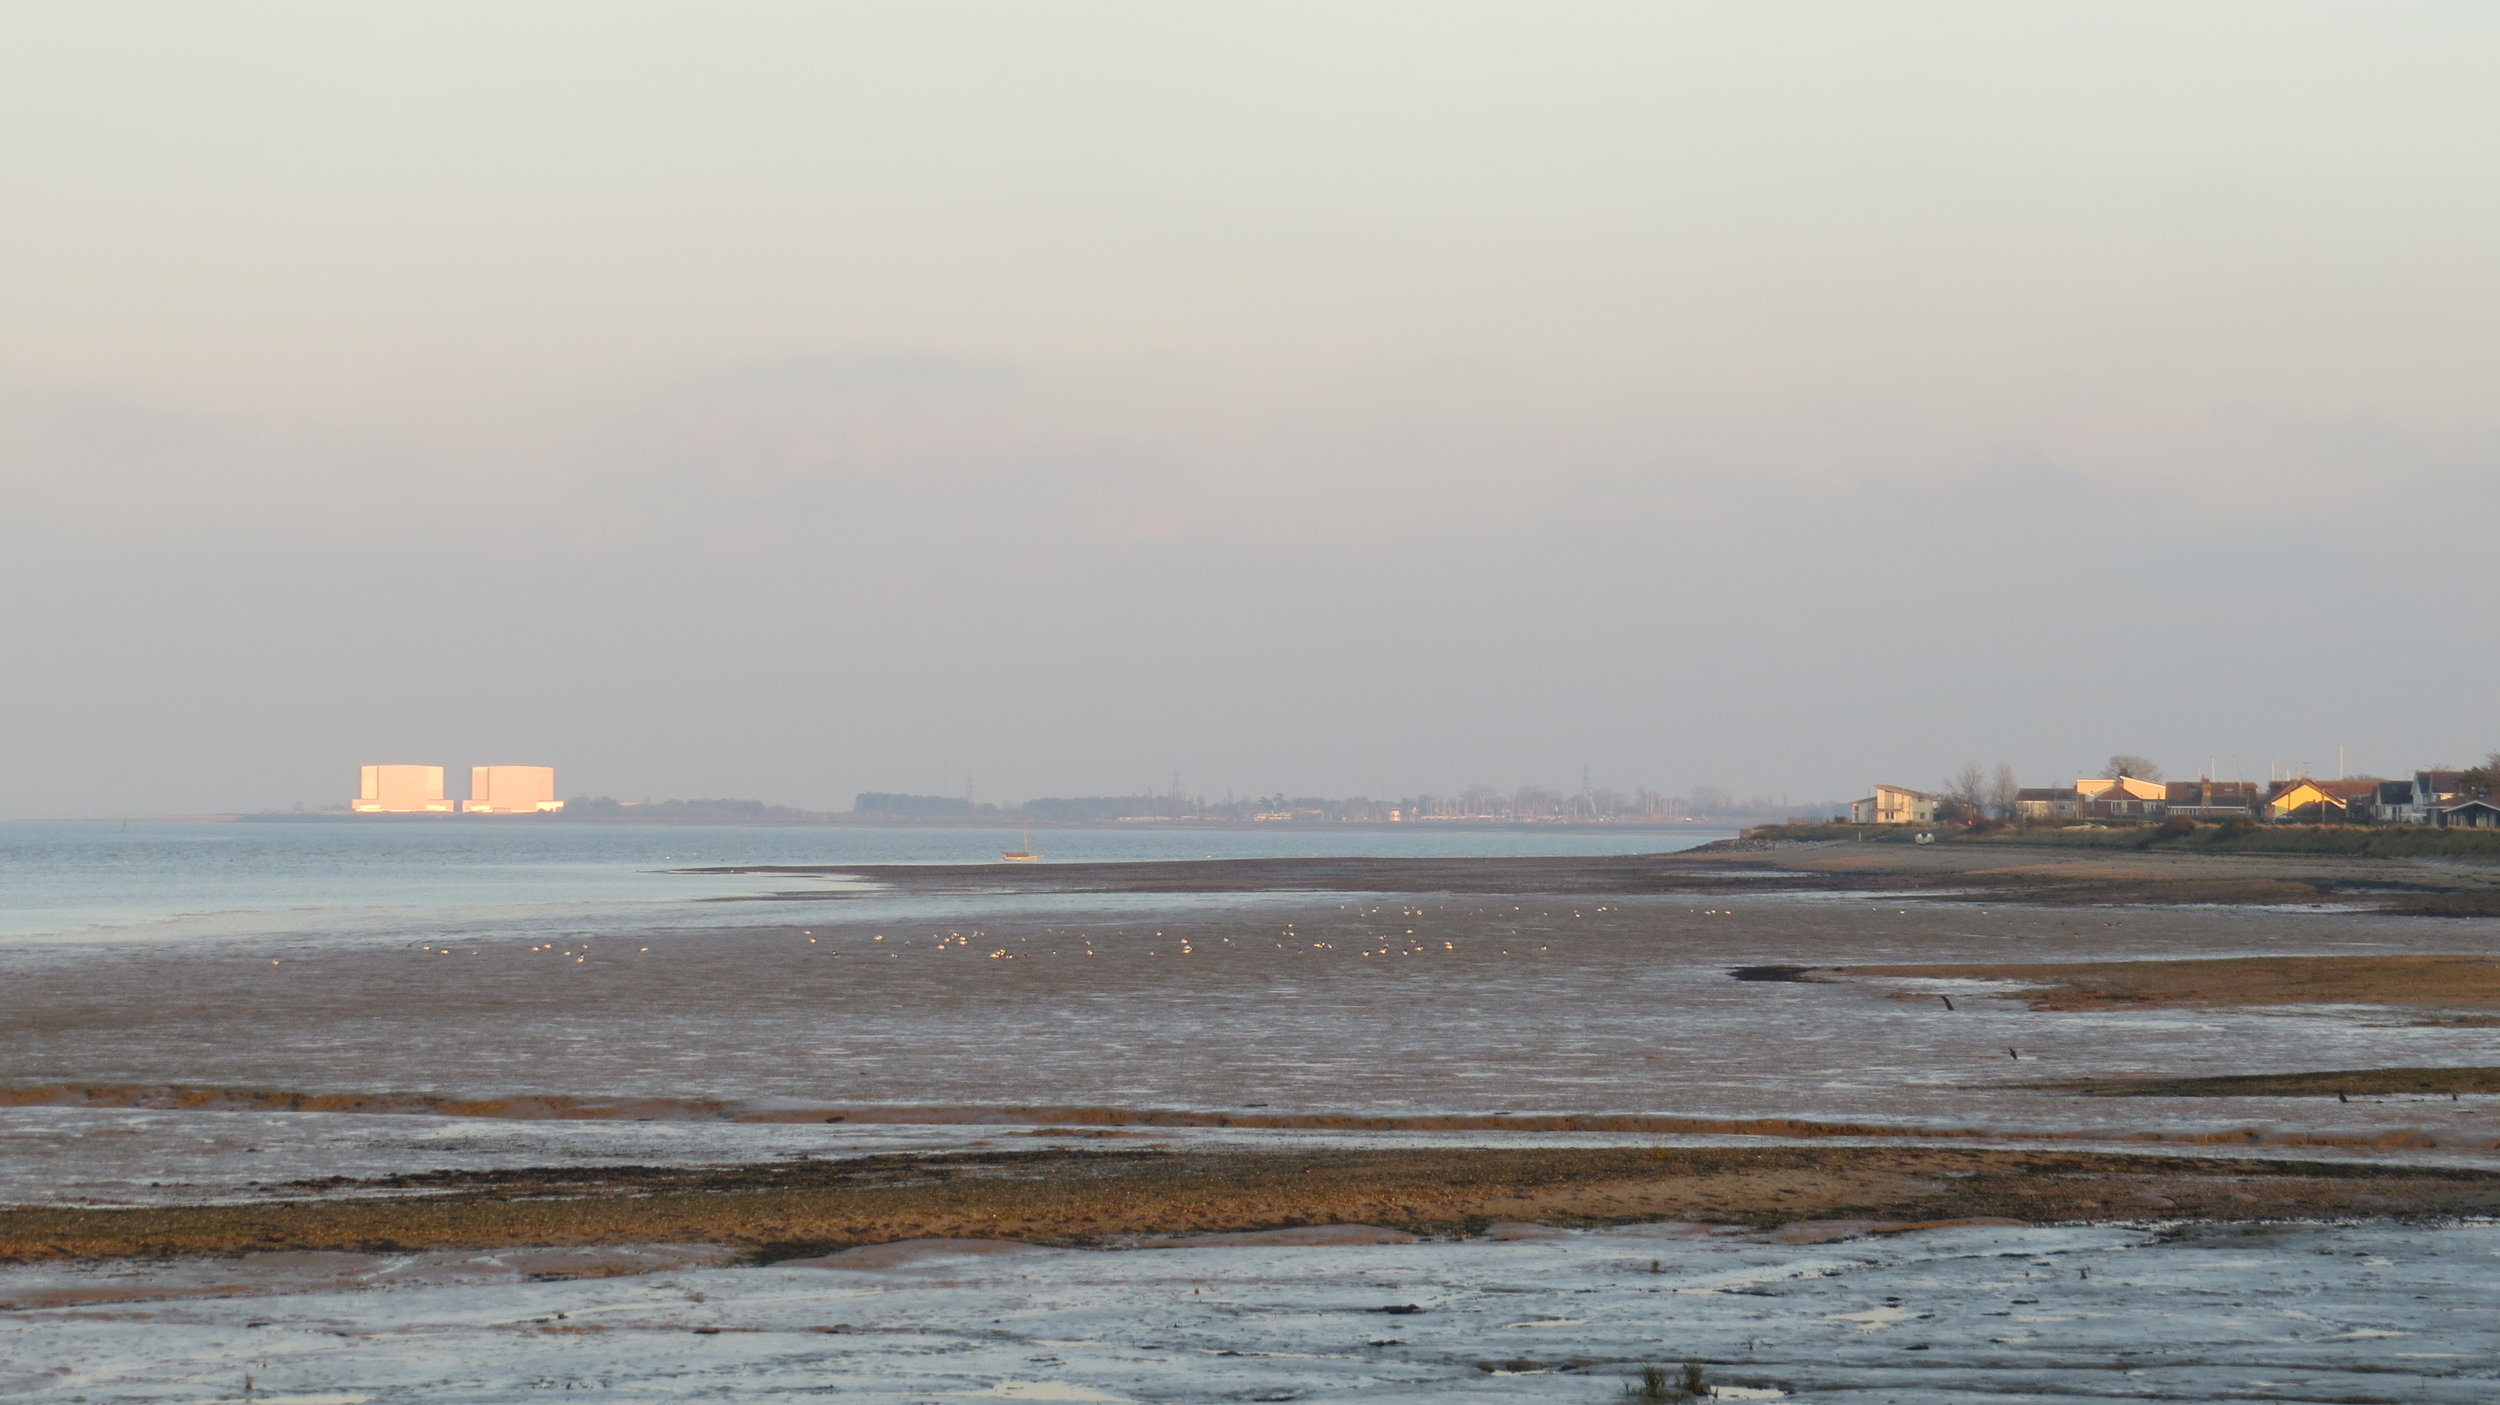 Bradwell Nuclear Power Station in Distance